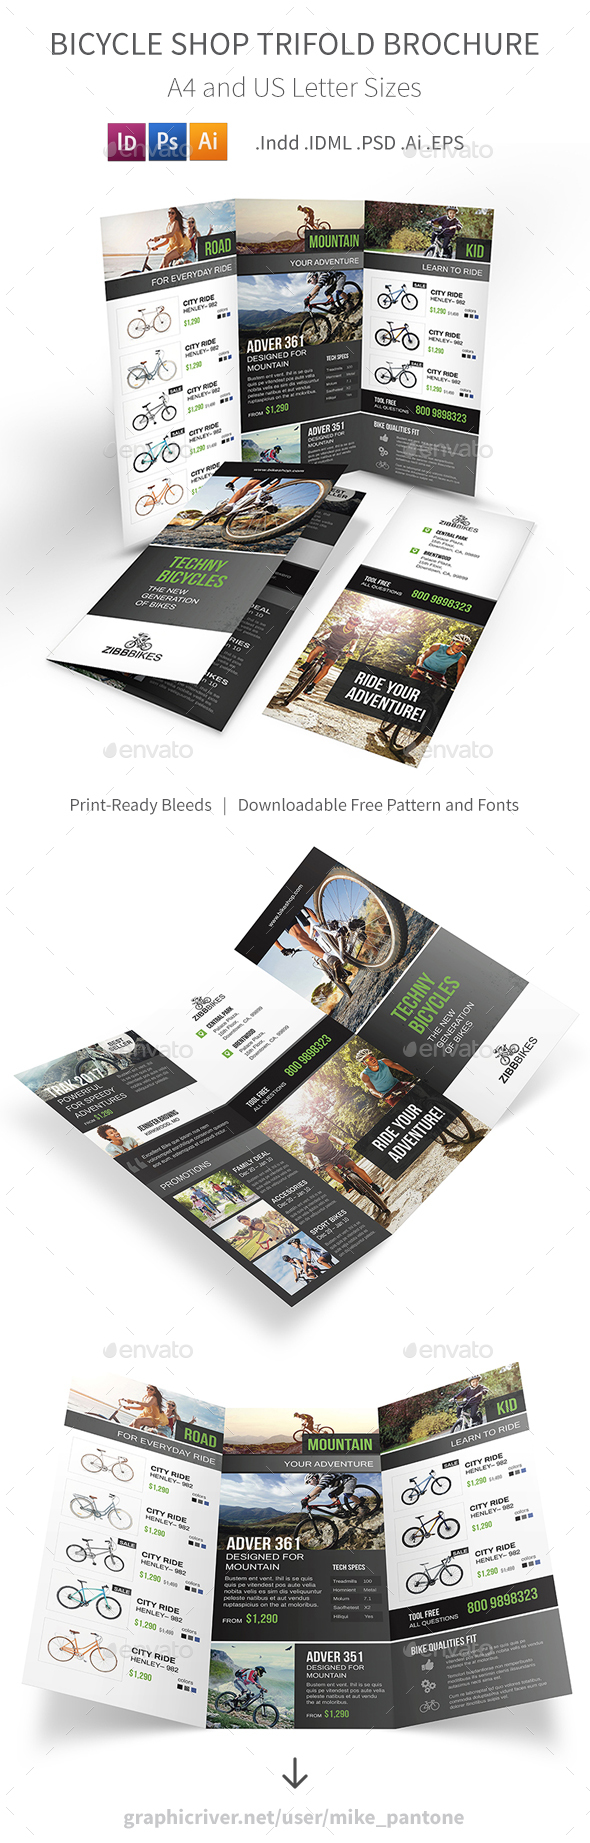 GraphicRiver Bicycle Shop Trifold Brochure 21108018